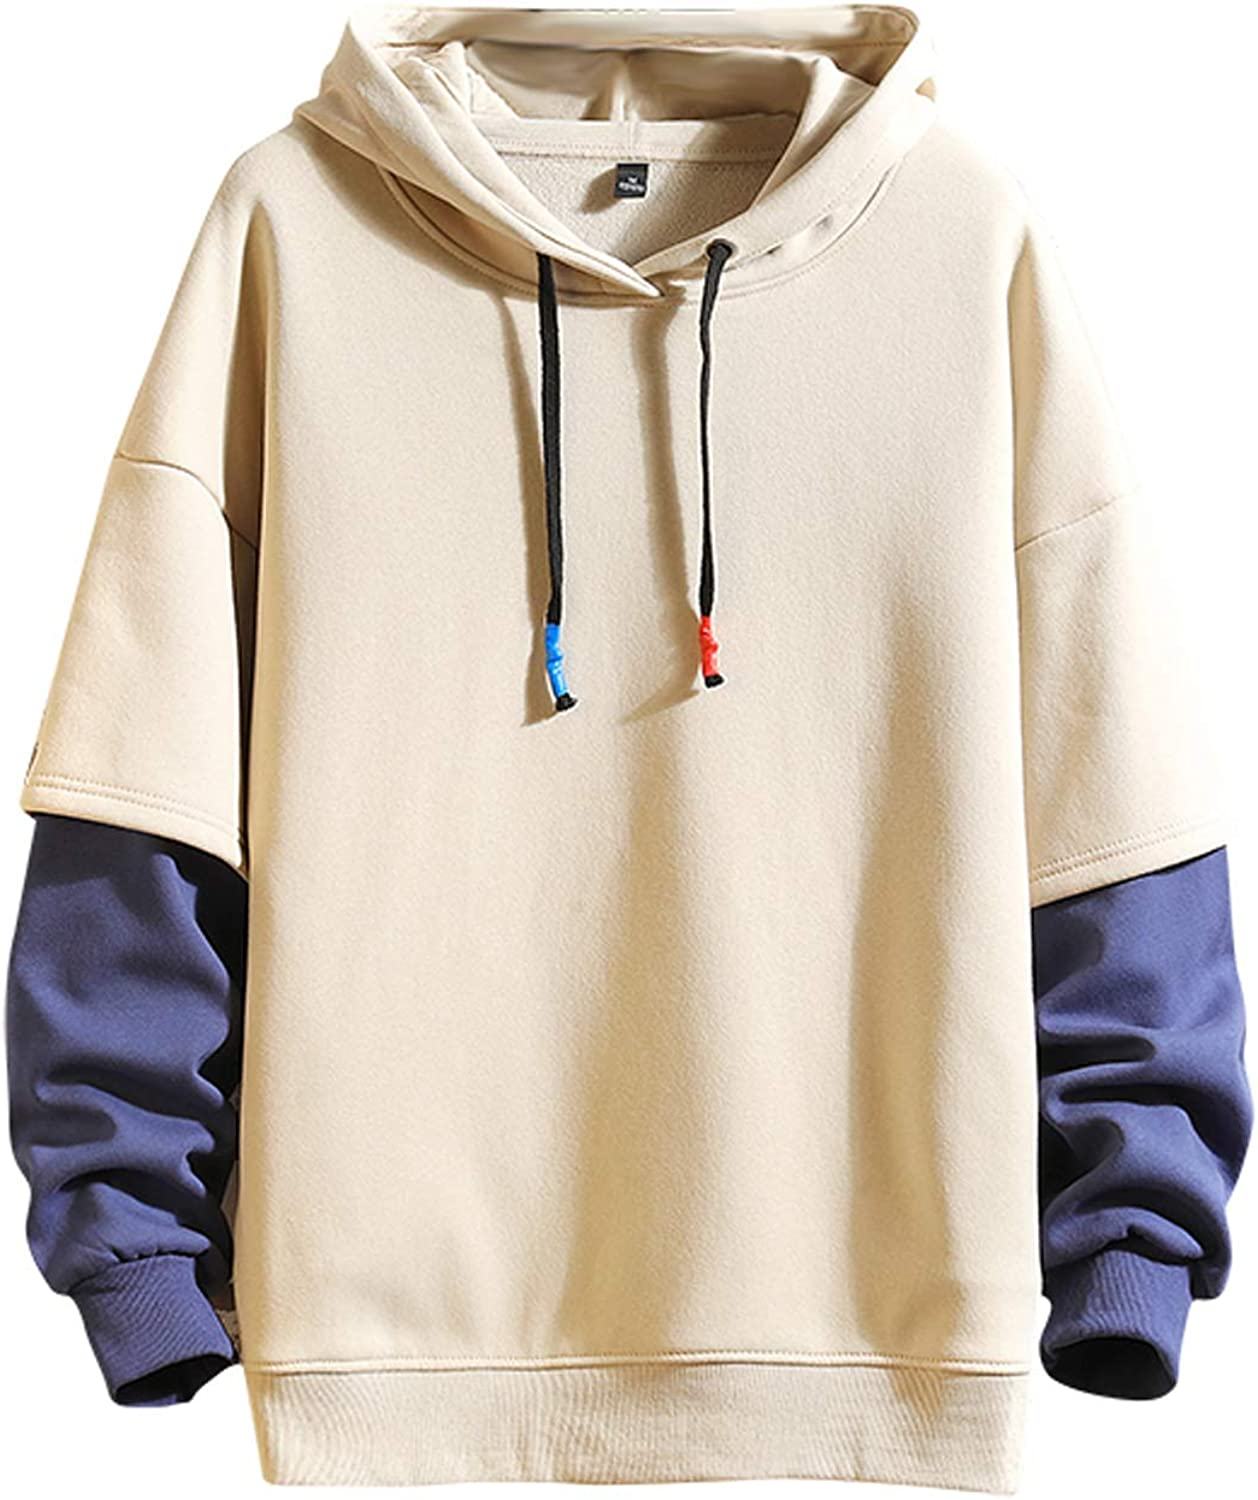 Fashion Selling rankings Hoodies Men's Color Block Hooded O-Neck Pullover Cheap mail order sales Sweatsh